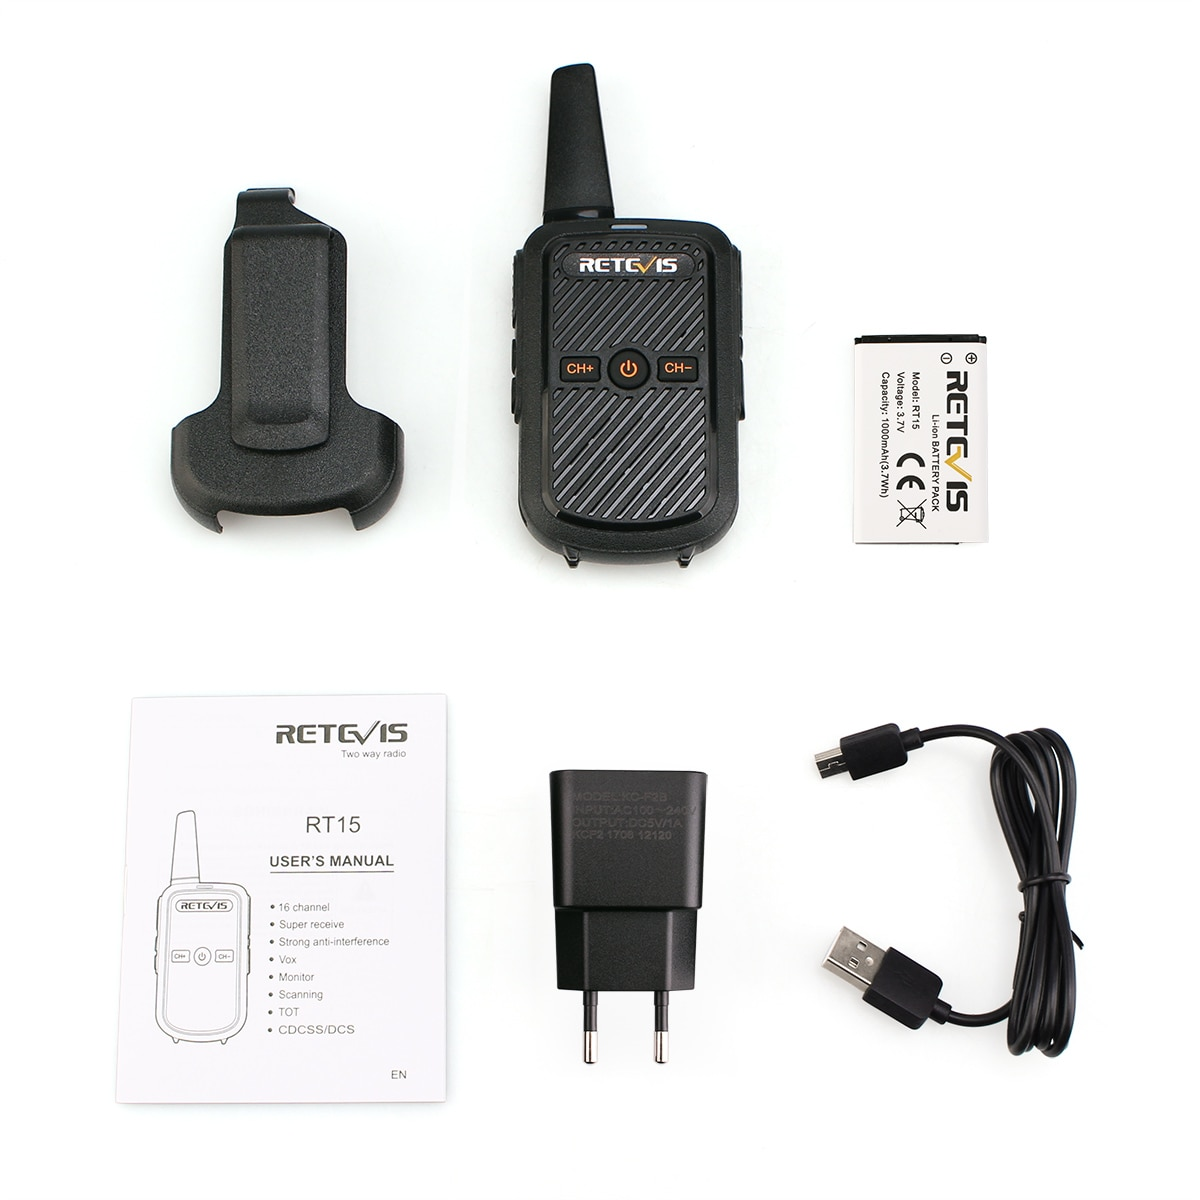 Mini Walkie Talkie 1 or 2 pcs Retevis RT15 Portable Two Way Radio FRS Radio Communicator Walkie-Talkies for hotel Restaurant PTT enlarge